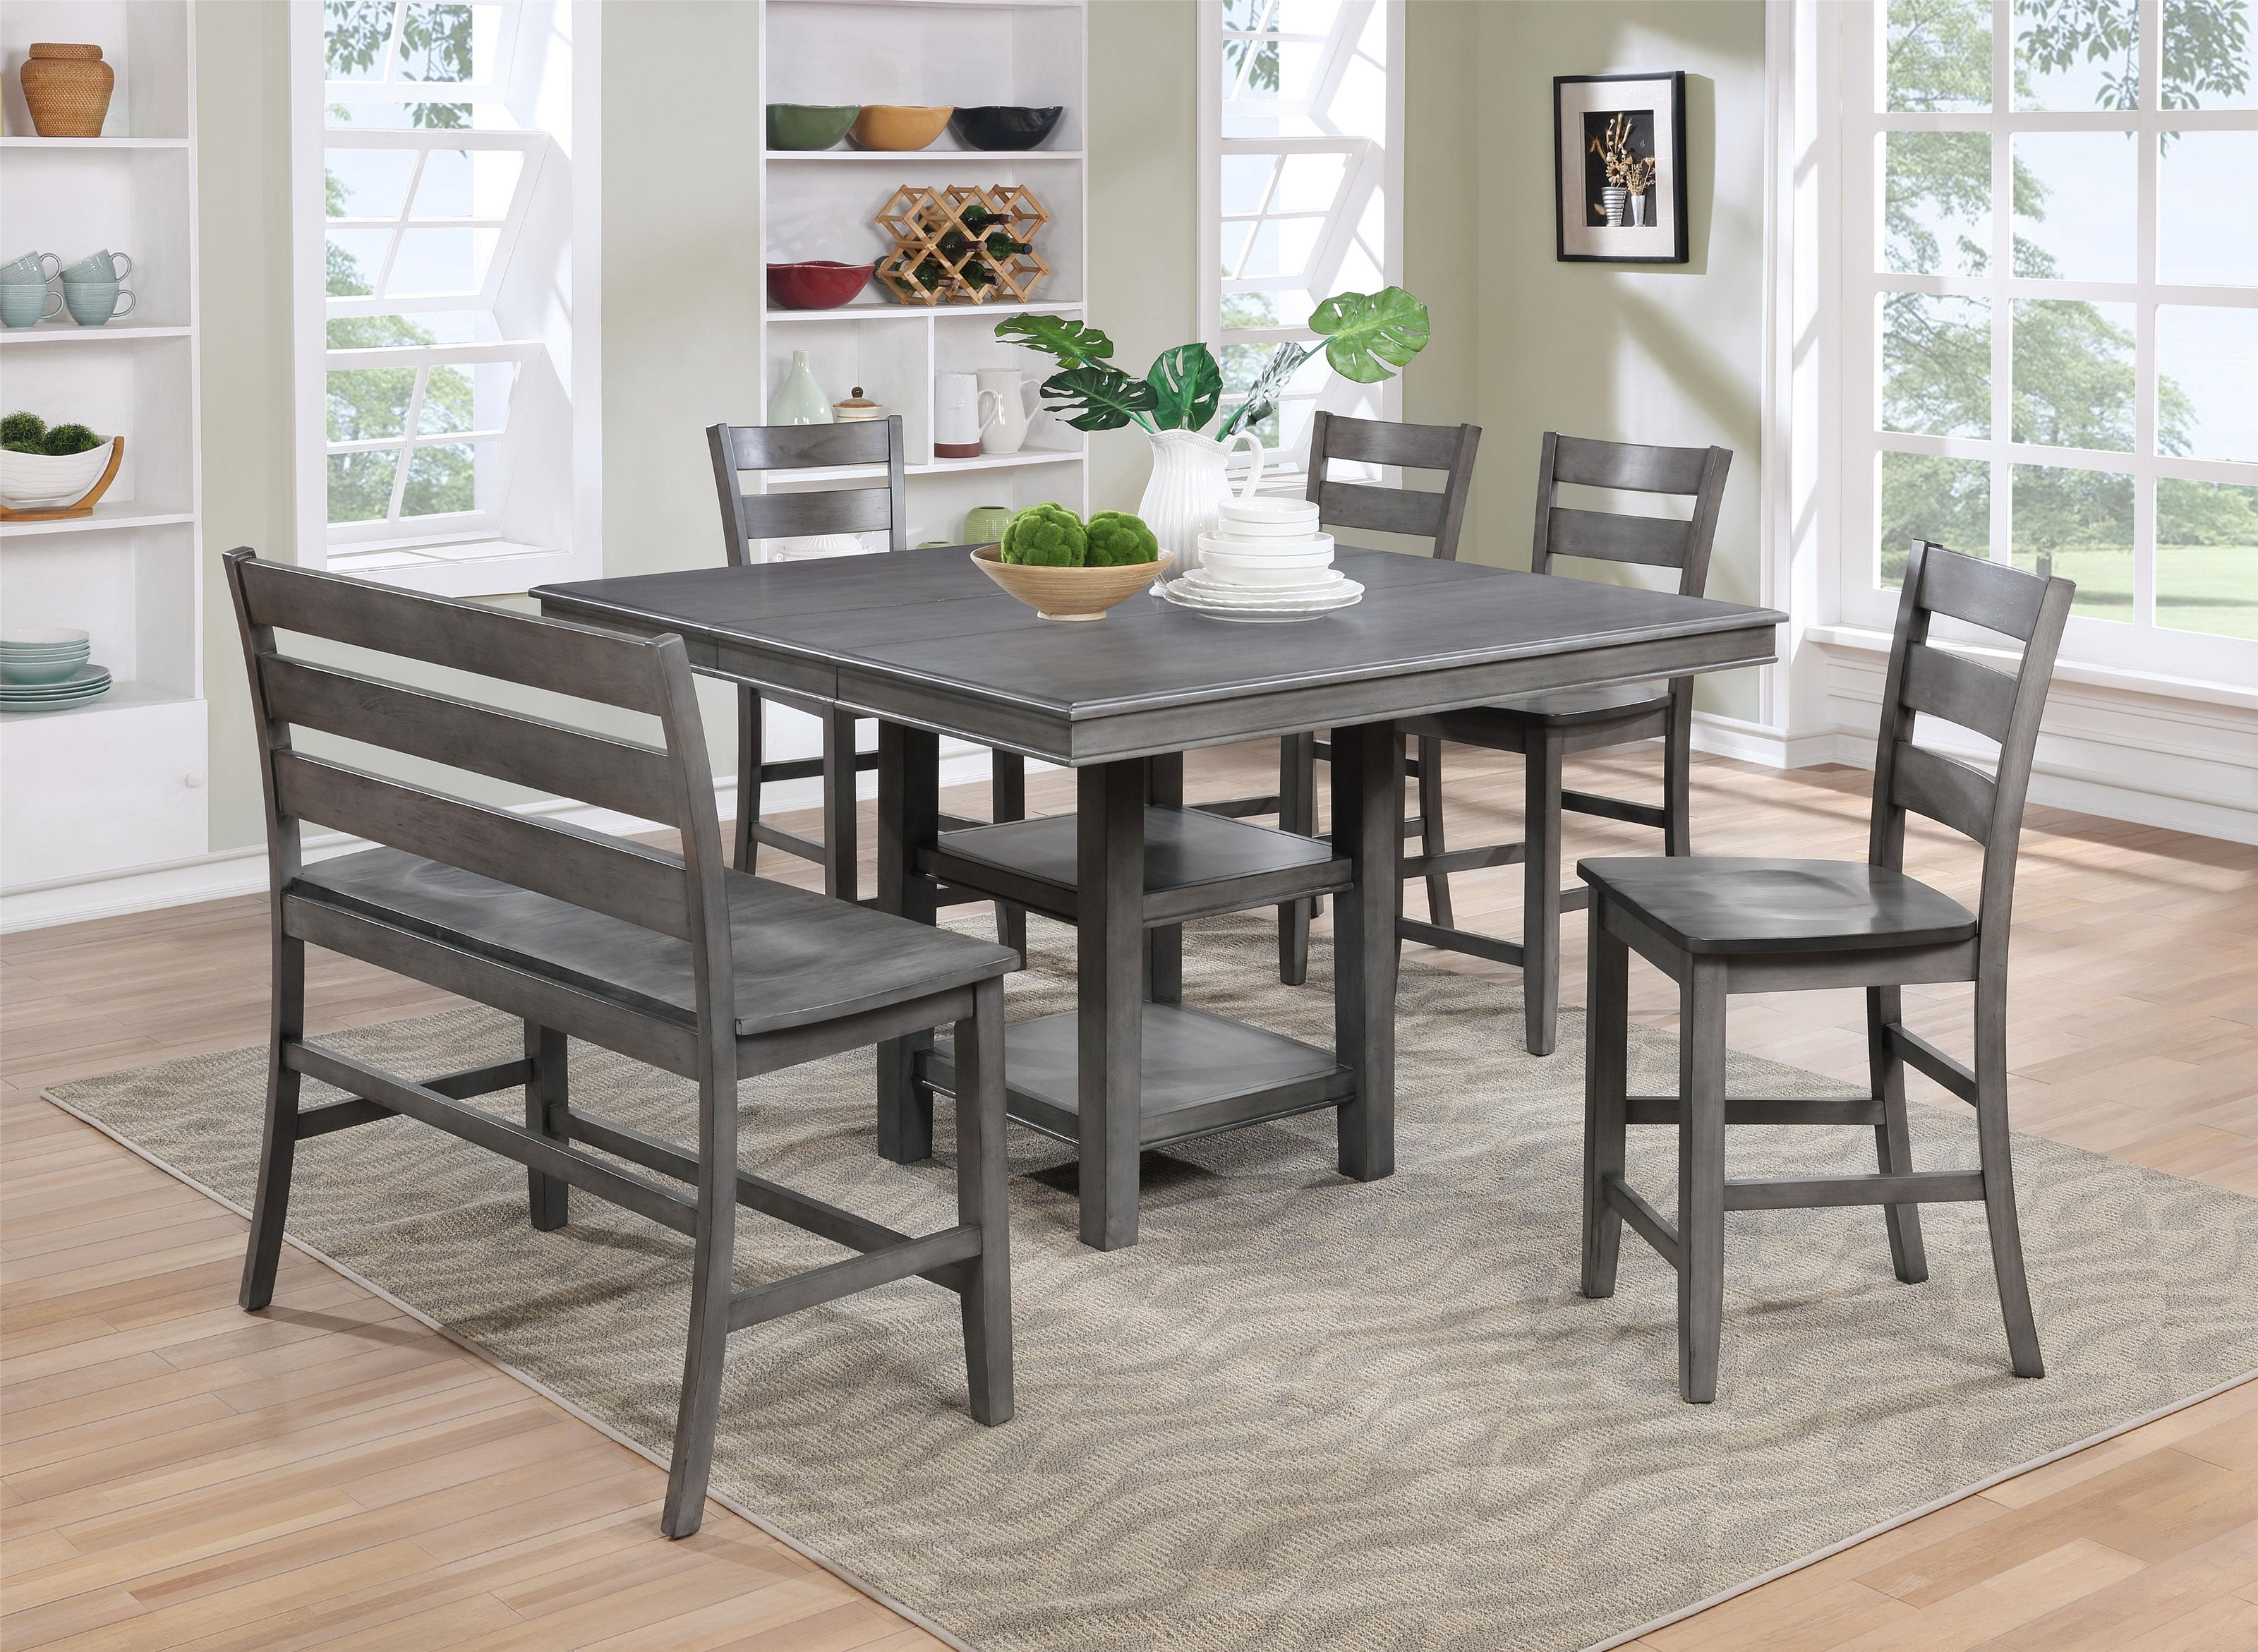 Lifestyle c1651p table and 4 stools furniture fair for Dining room tables jacksonville nc